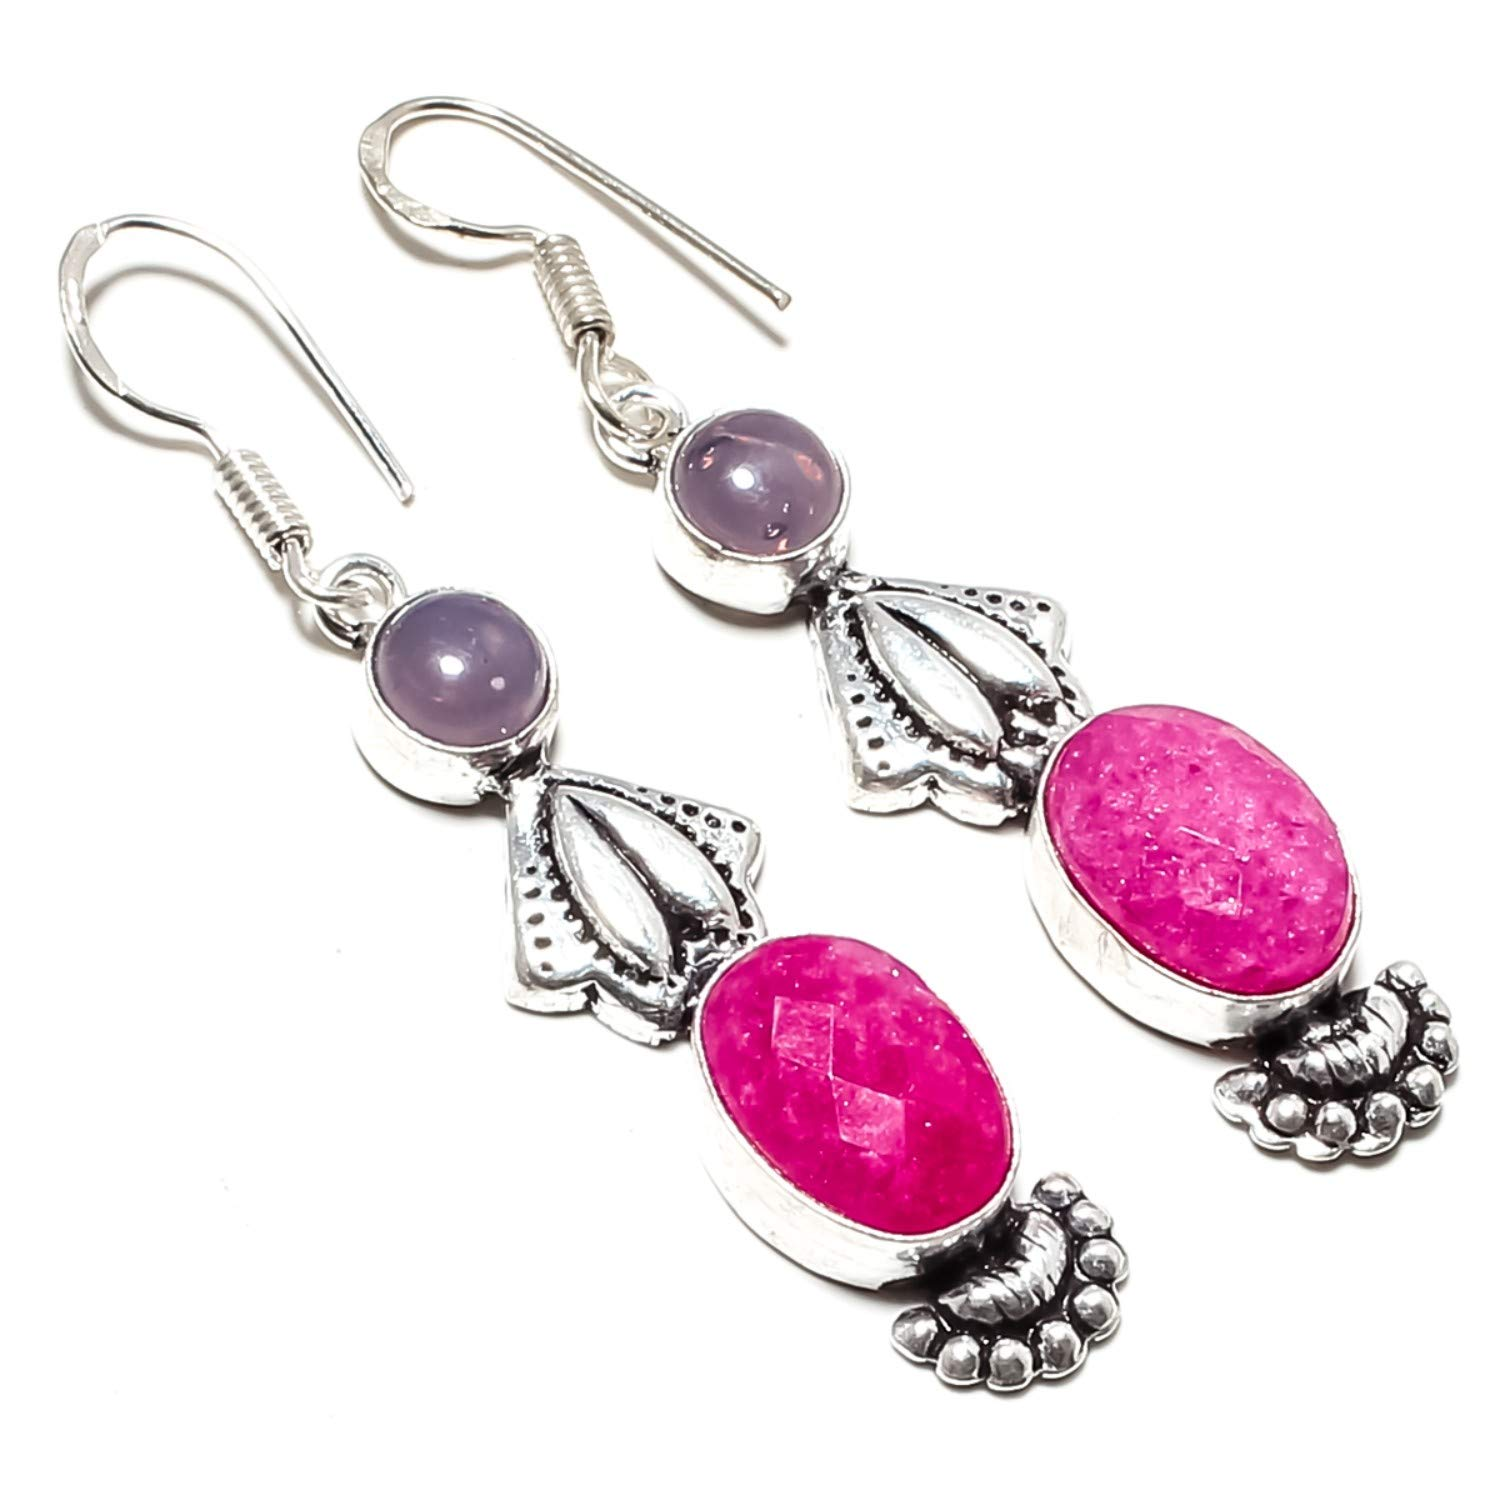 jewelsempire Beautiful Pink Ruby Gemstone Earrings SF-613 /… 925 Silver Plated Handmade Jewelry- Dangle and Drop Earrings -